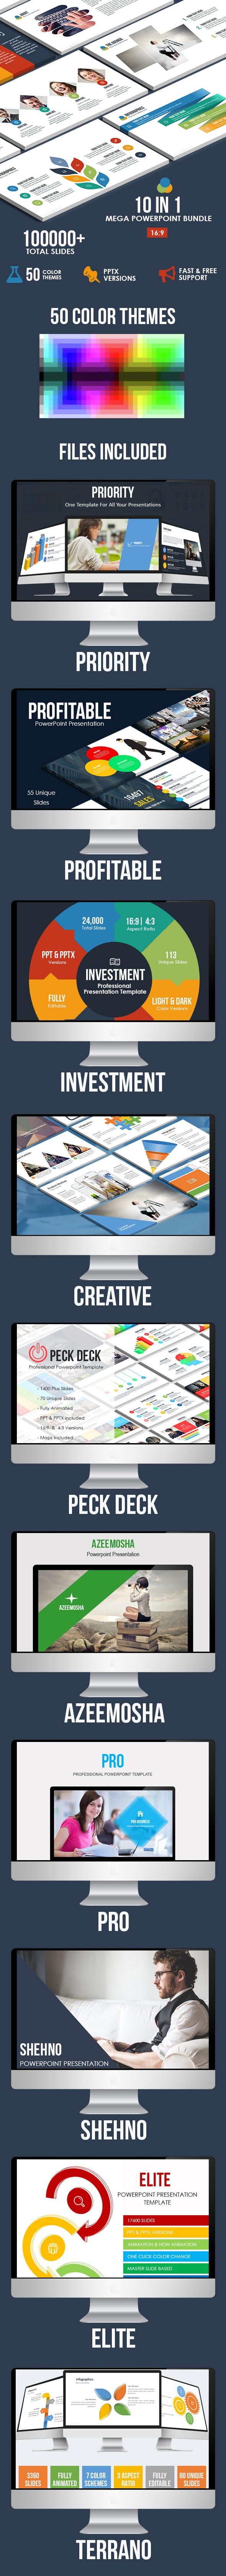 10 IN 1 - Mega Powerpoint Bundle - Business PowerPoint Templates